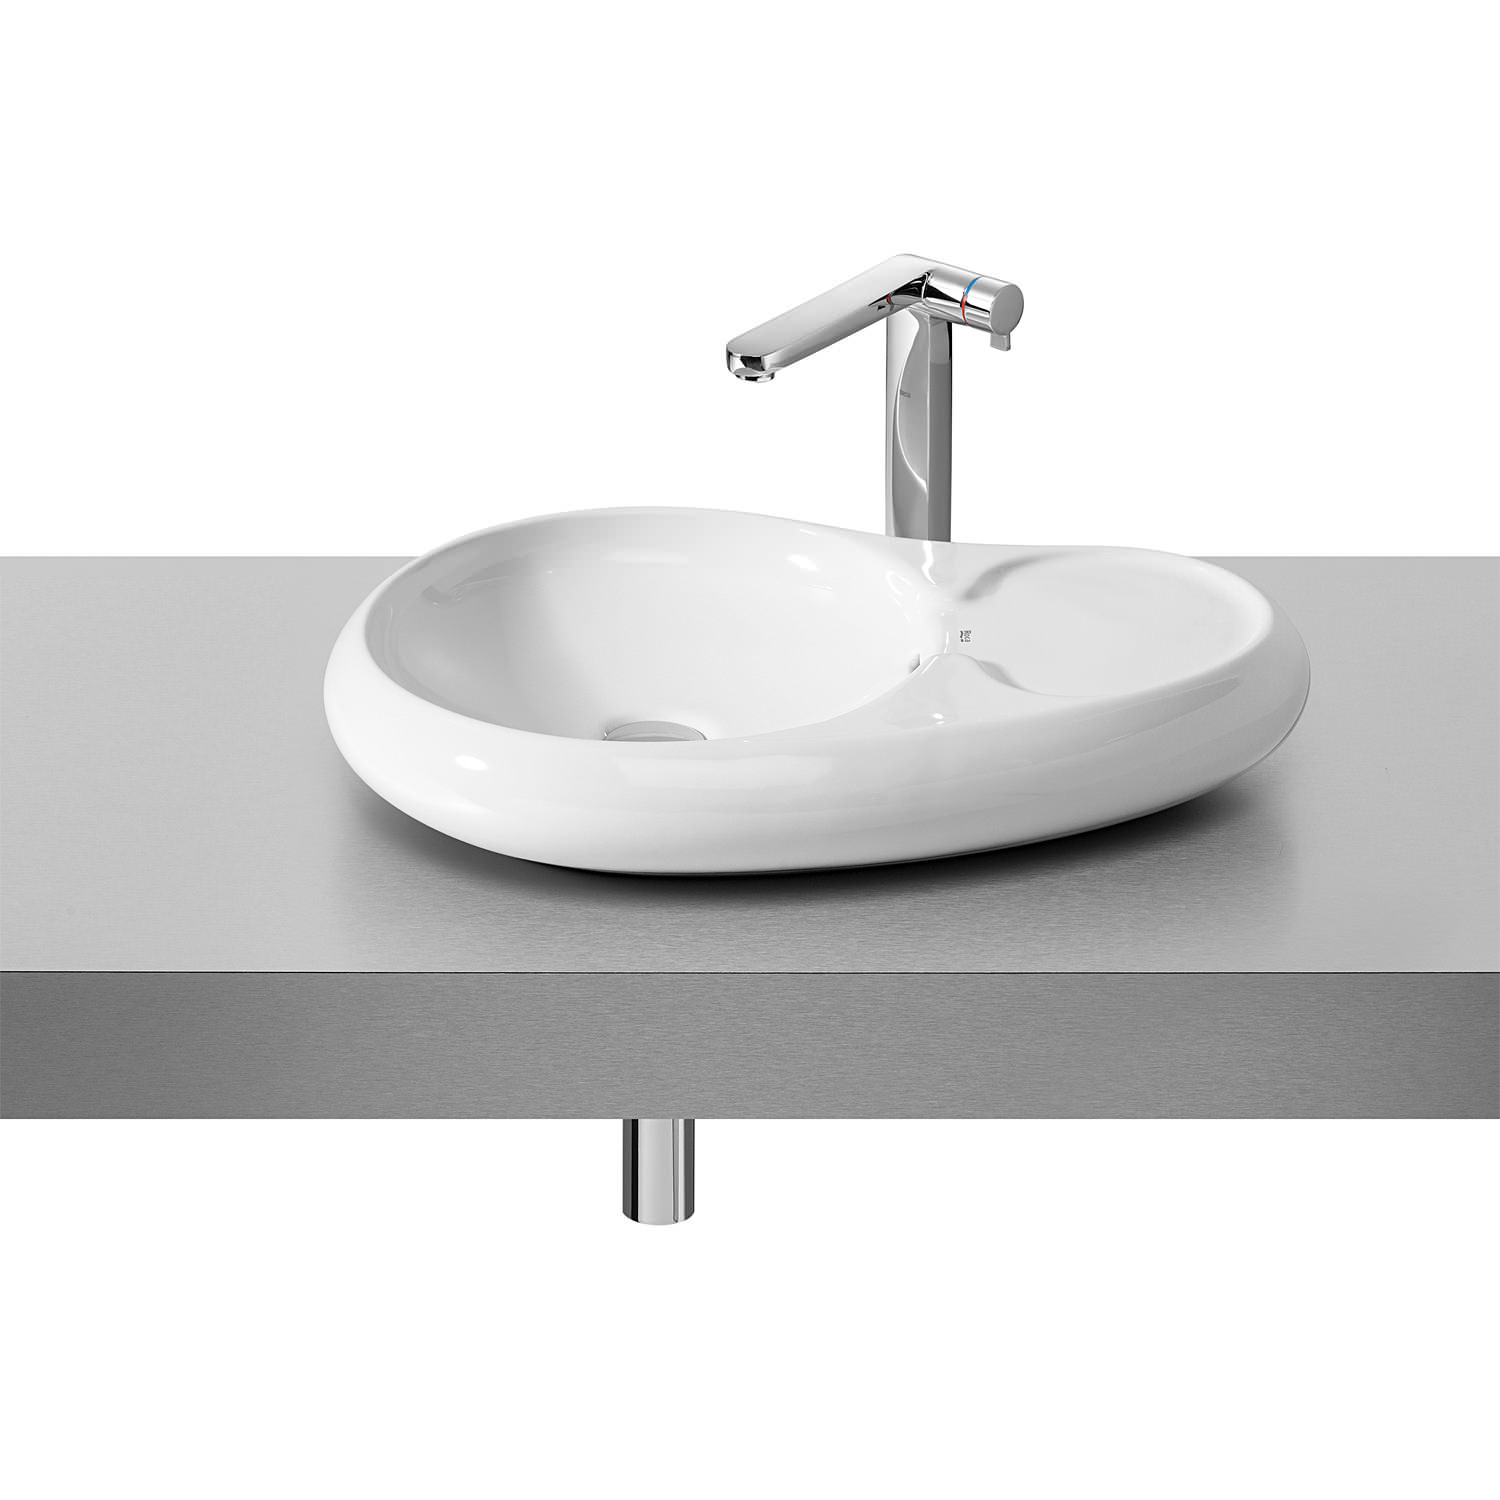 Roca Bathroom Accessories Roca Urbi 7 On Countertop Basin 600mm X 400mm 327227000